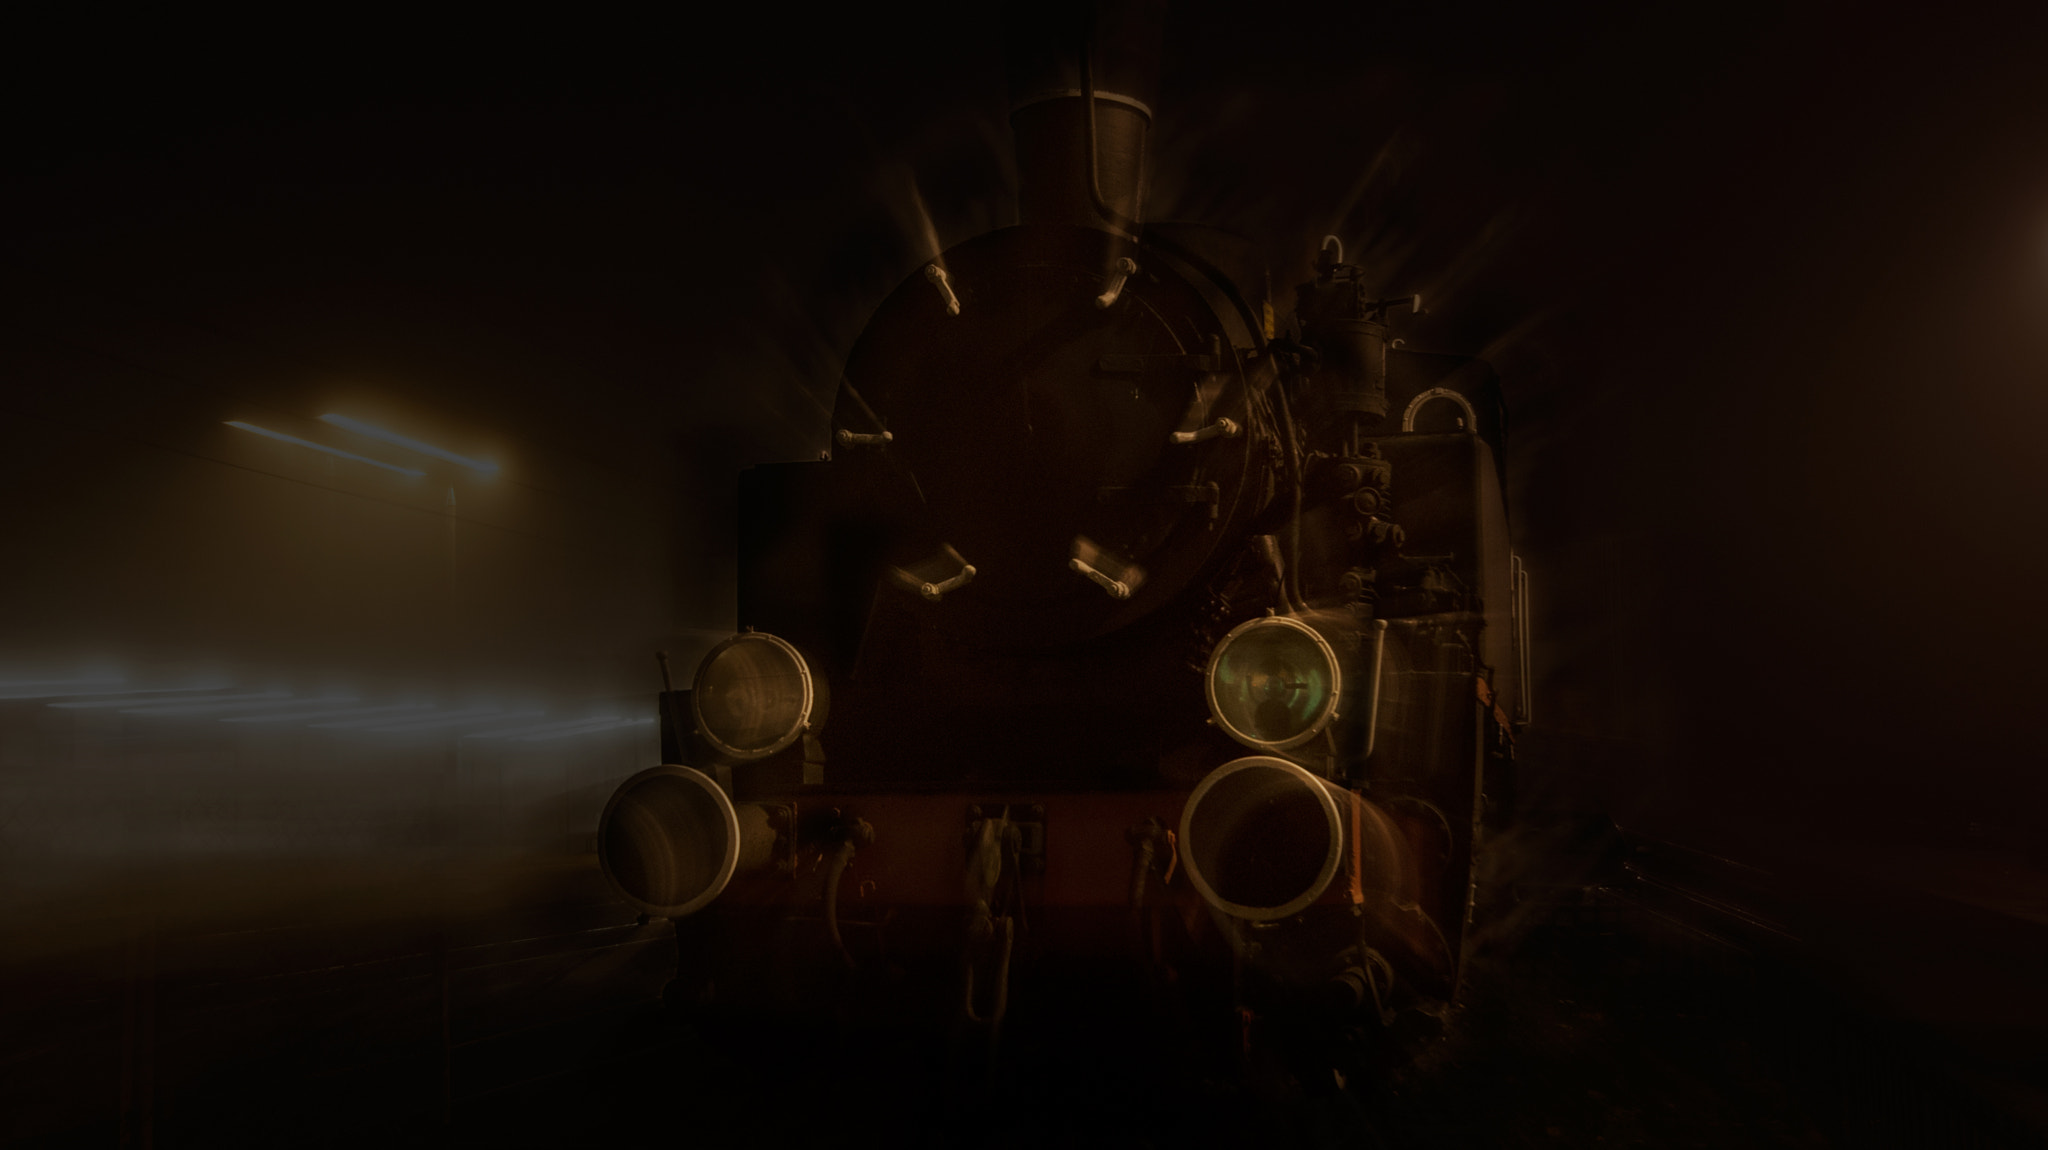 Photograph Locomotive ghost by Pawel Nalaskowski on 500px